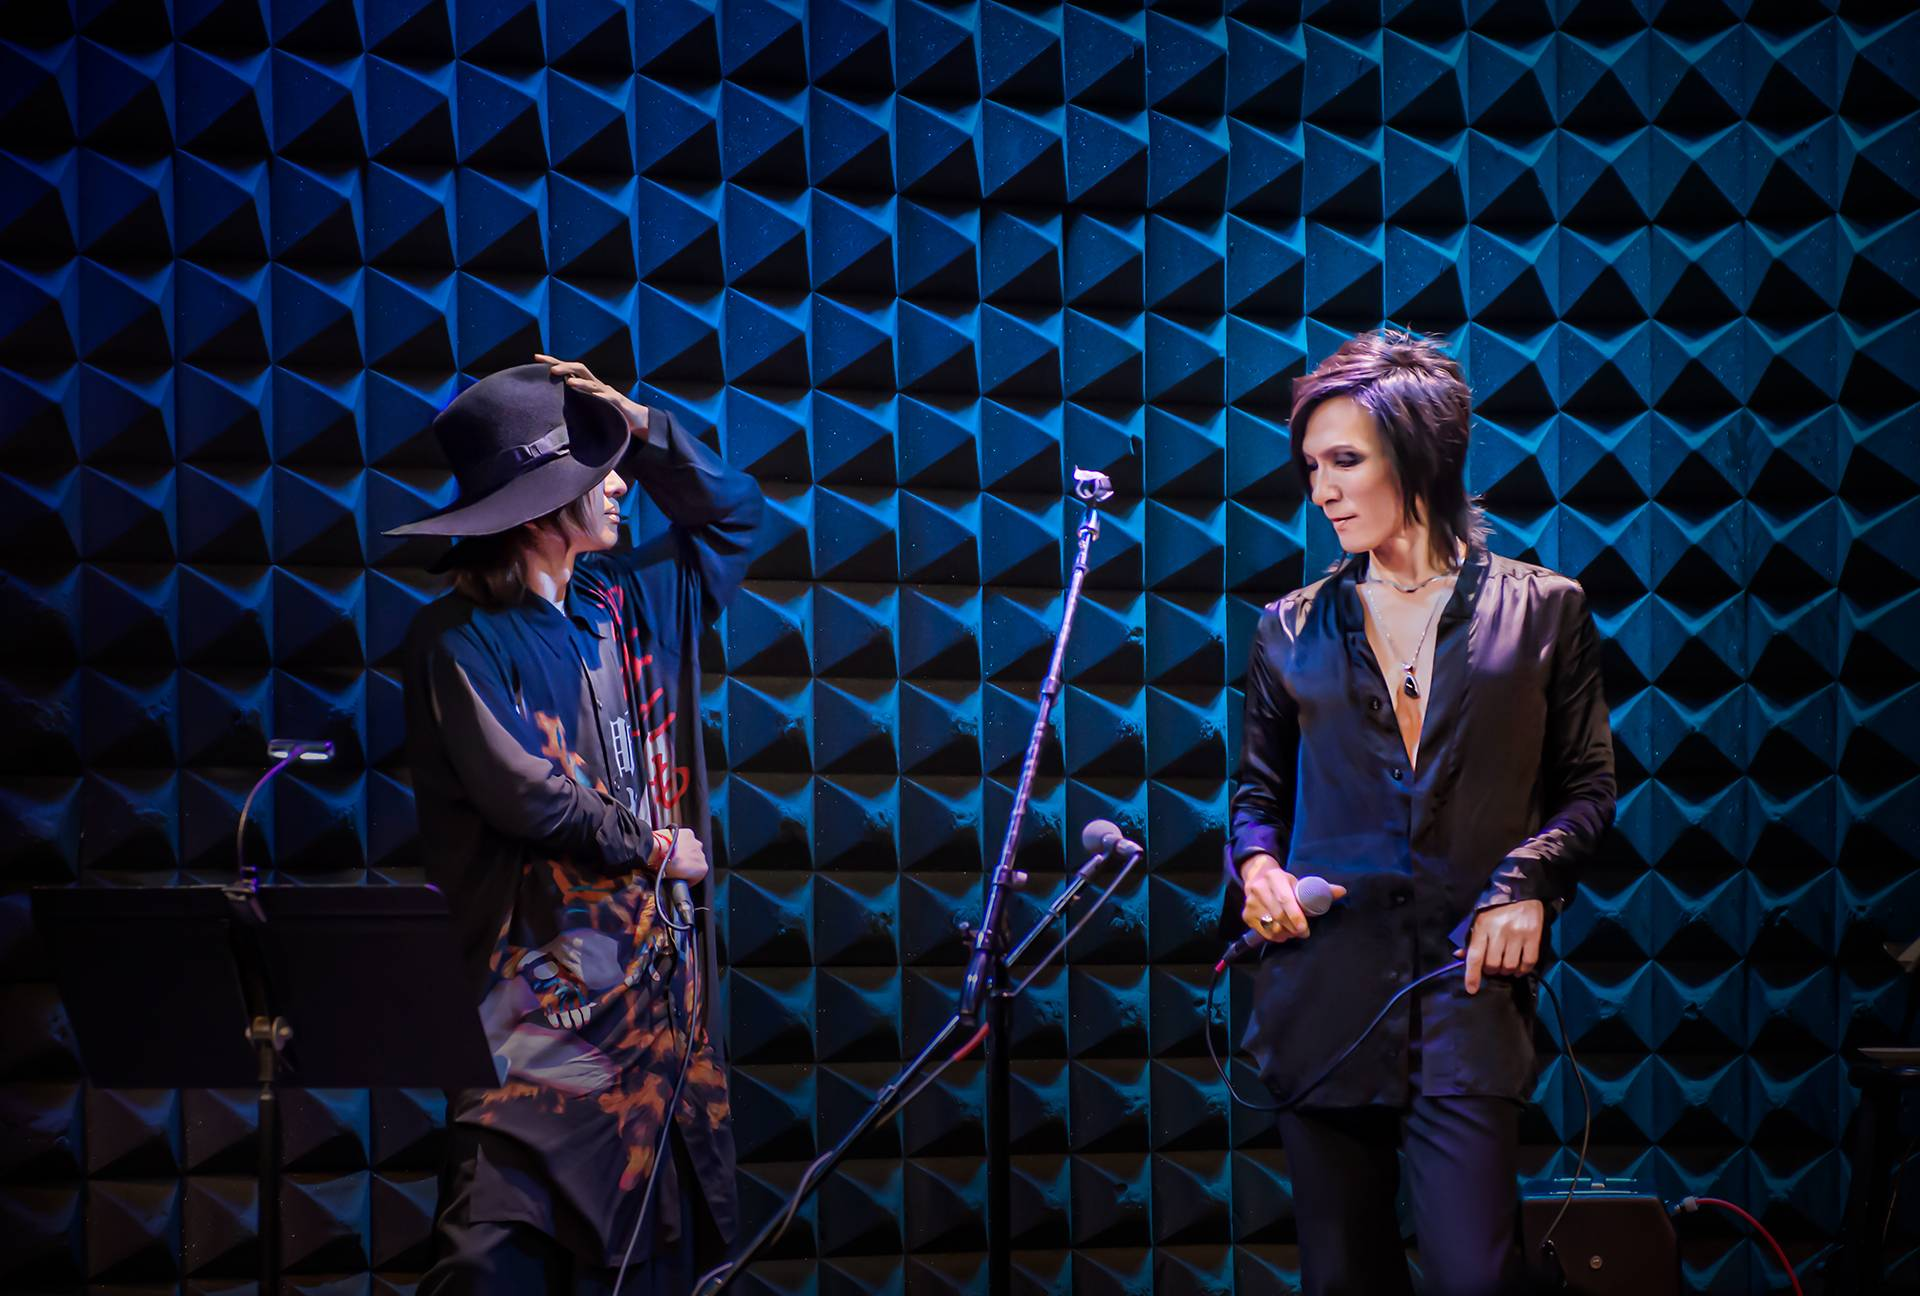 """MORRIE's Solitude & KIYOHARU's Elegy"" at Joe's Pub, New York City"